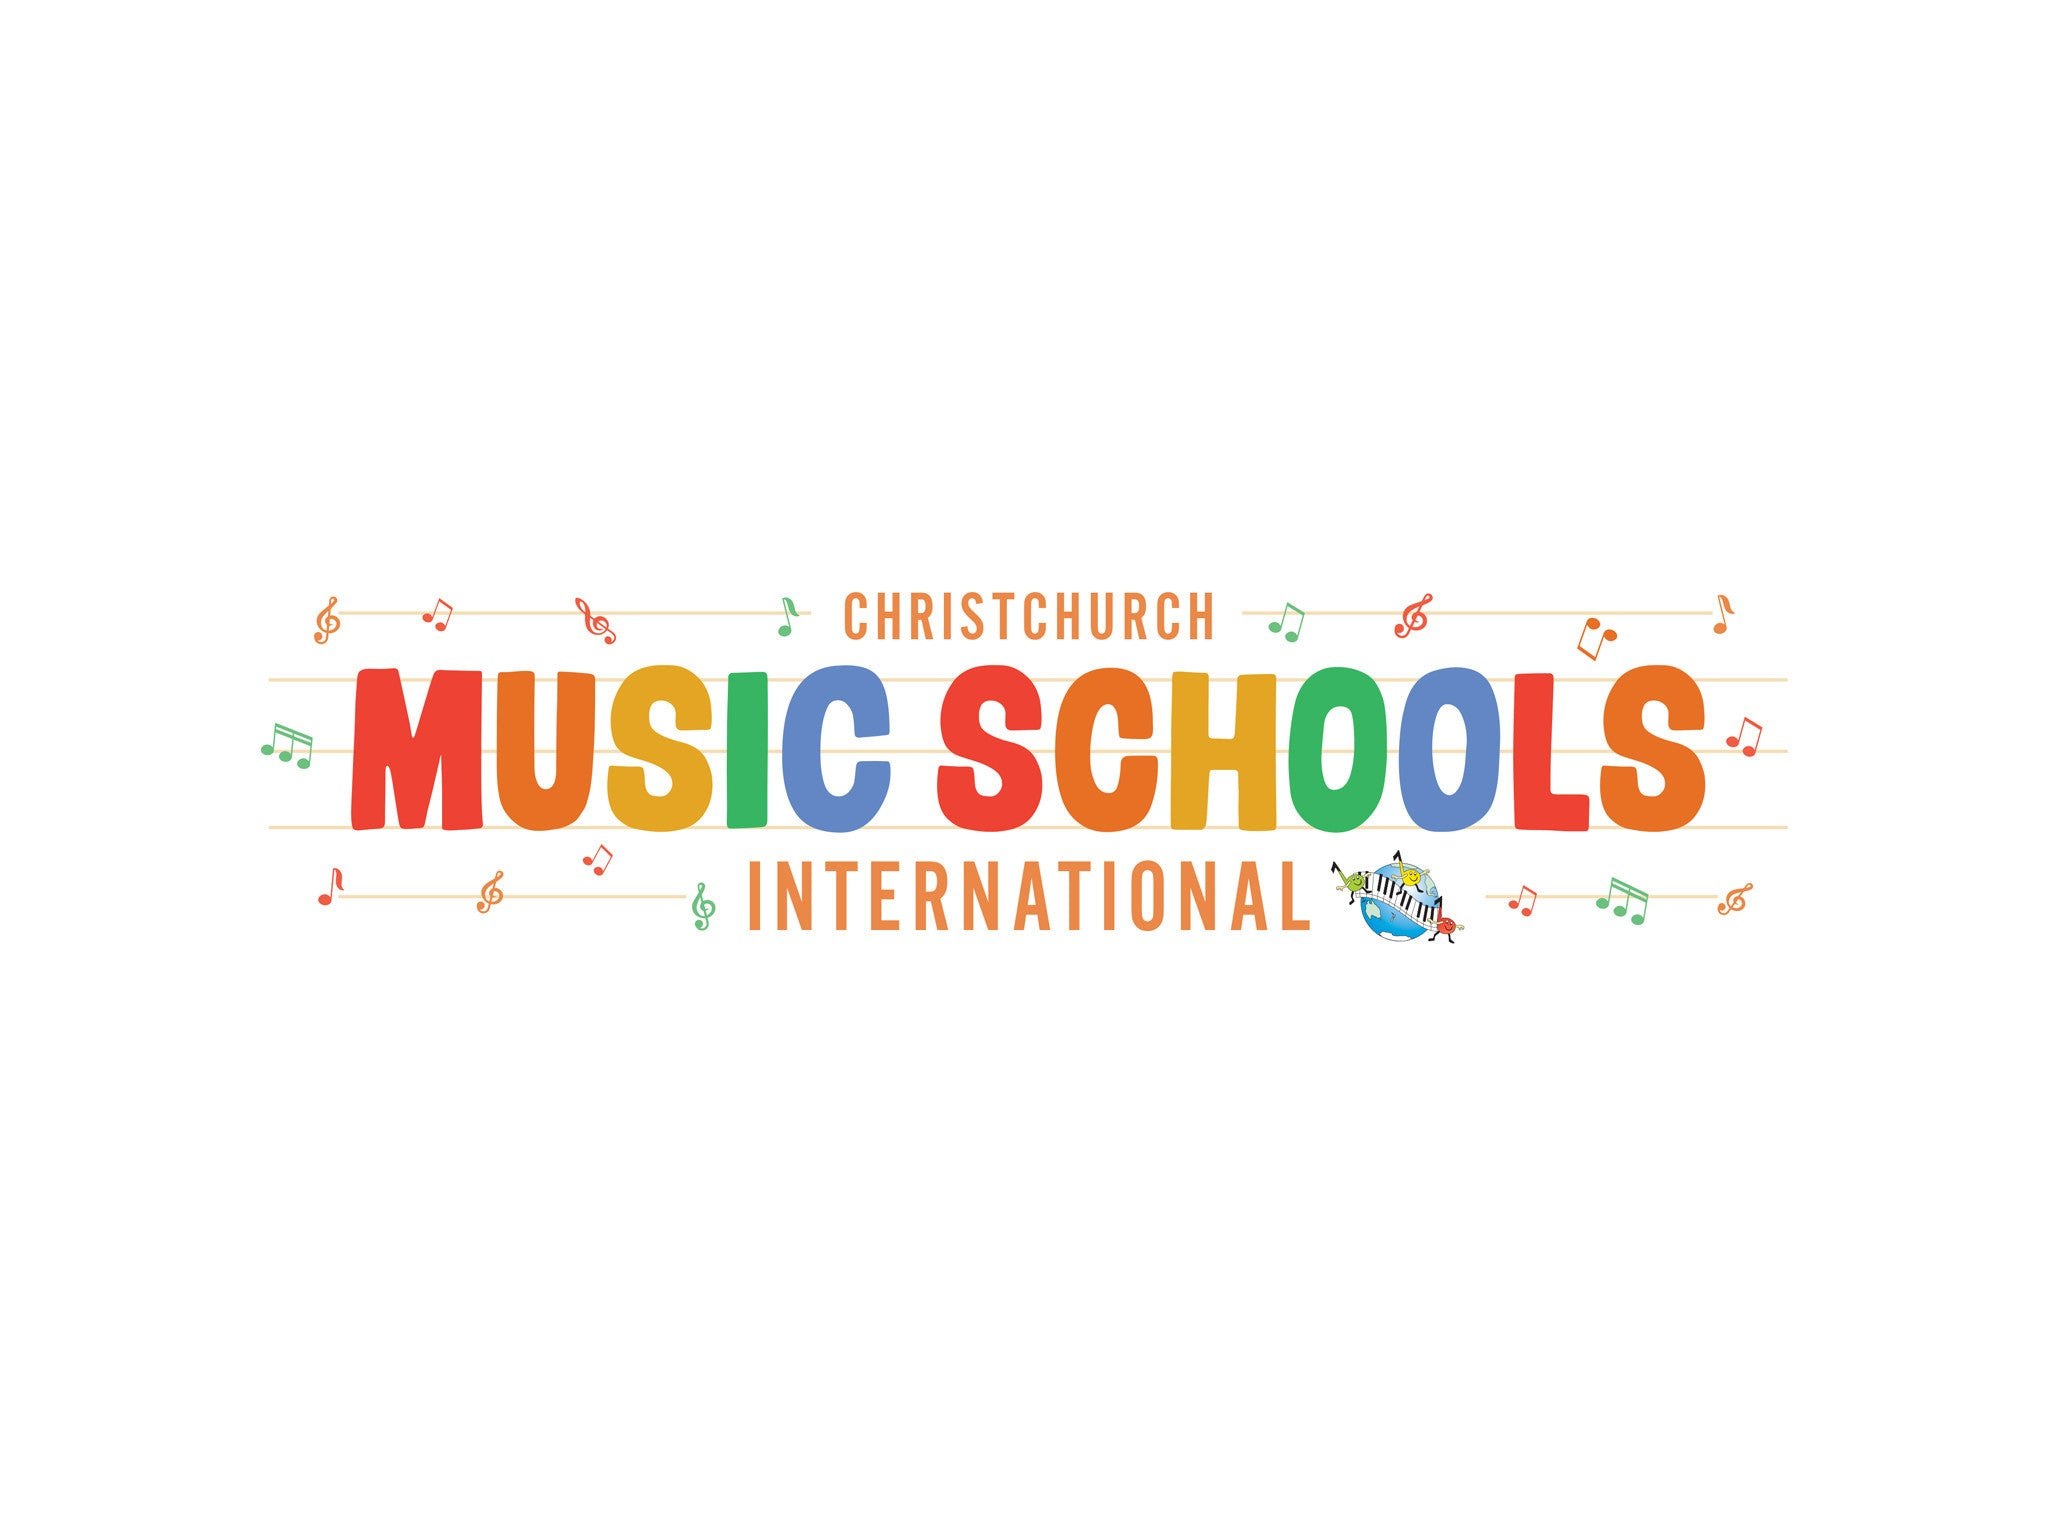 Music Schools International, Christchurch logo